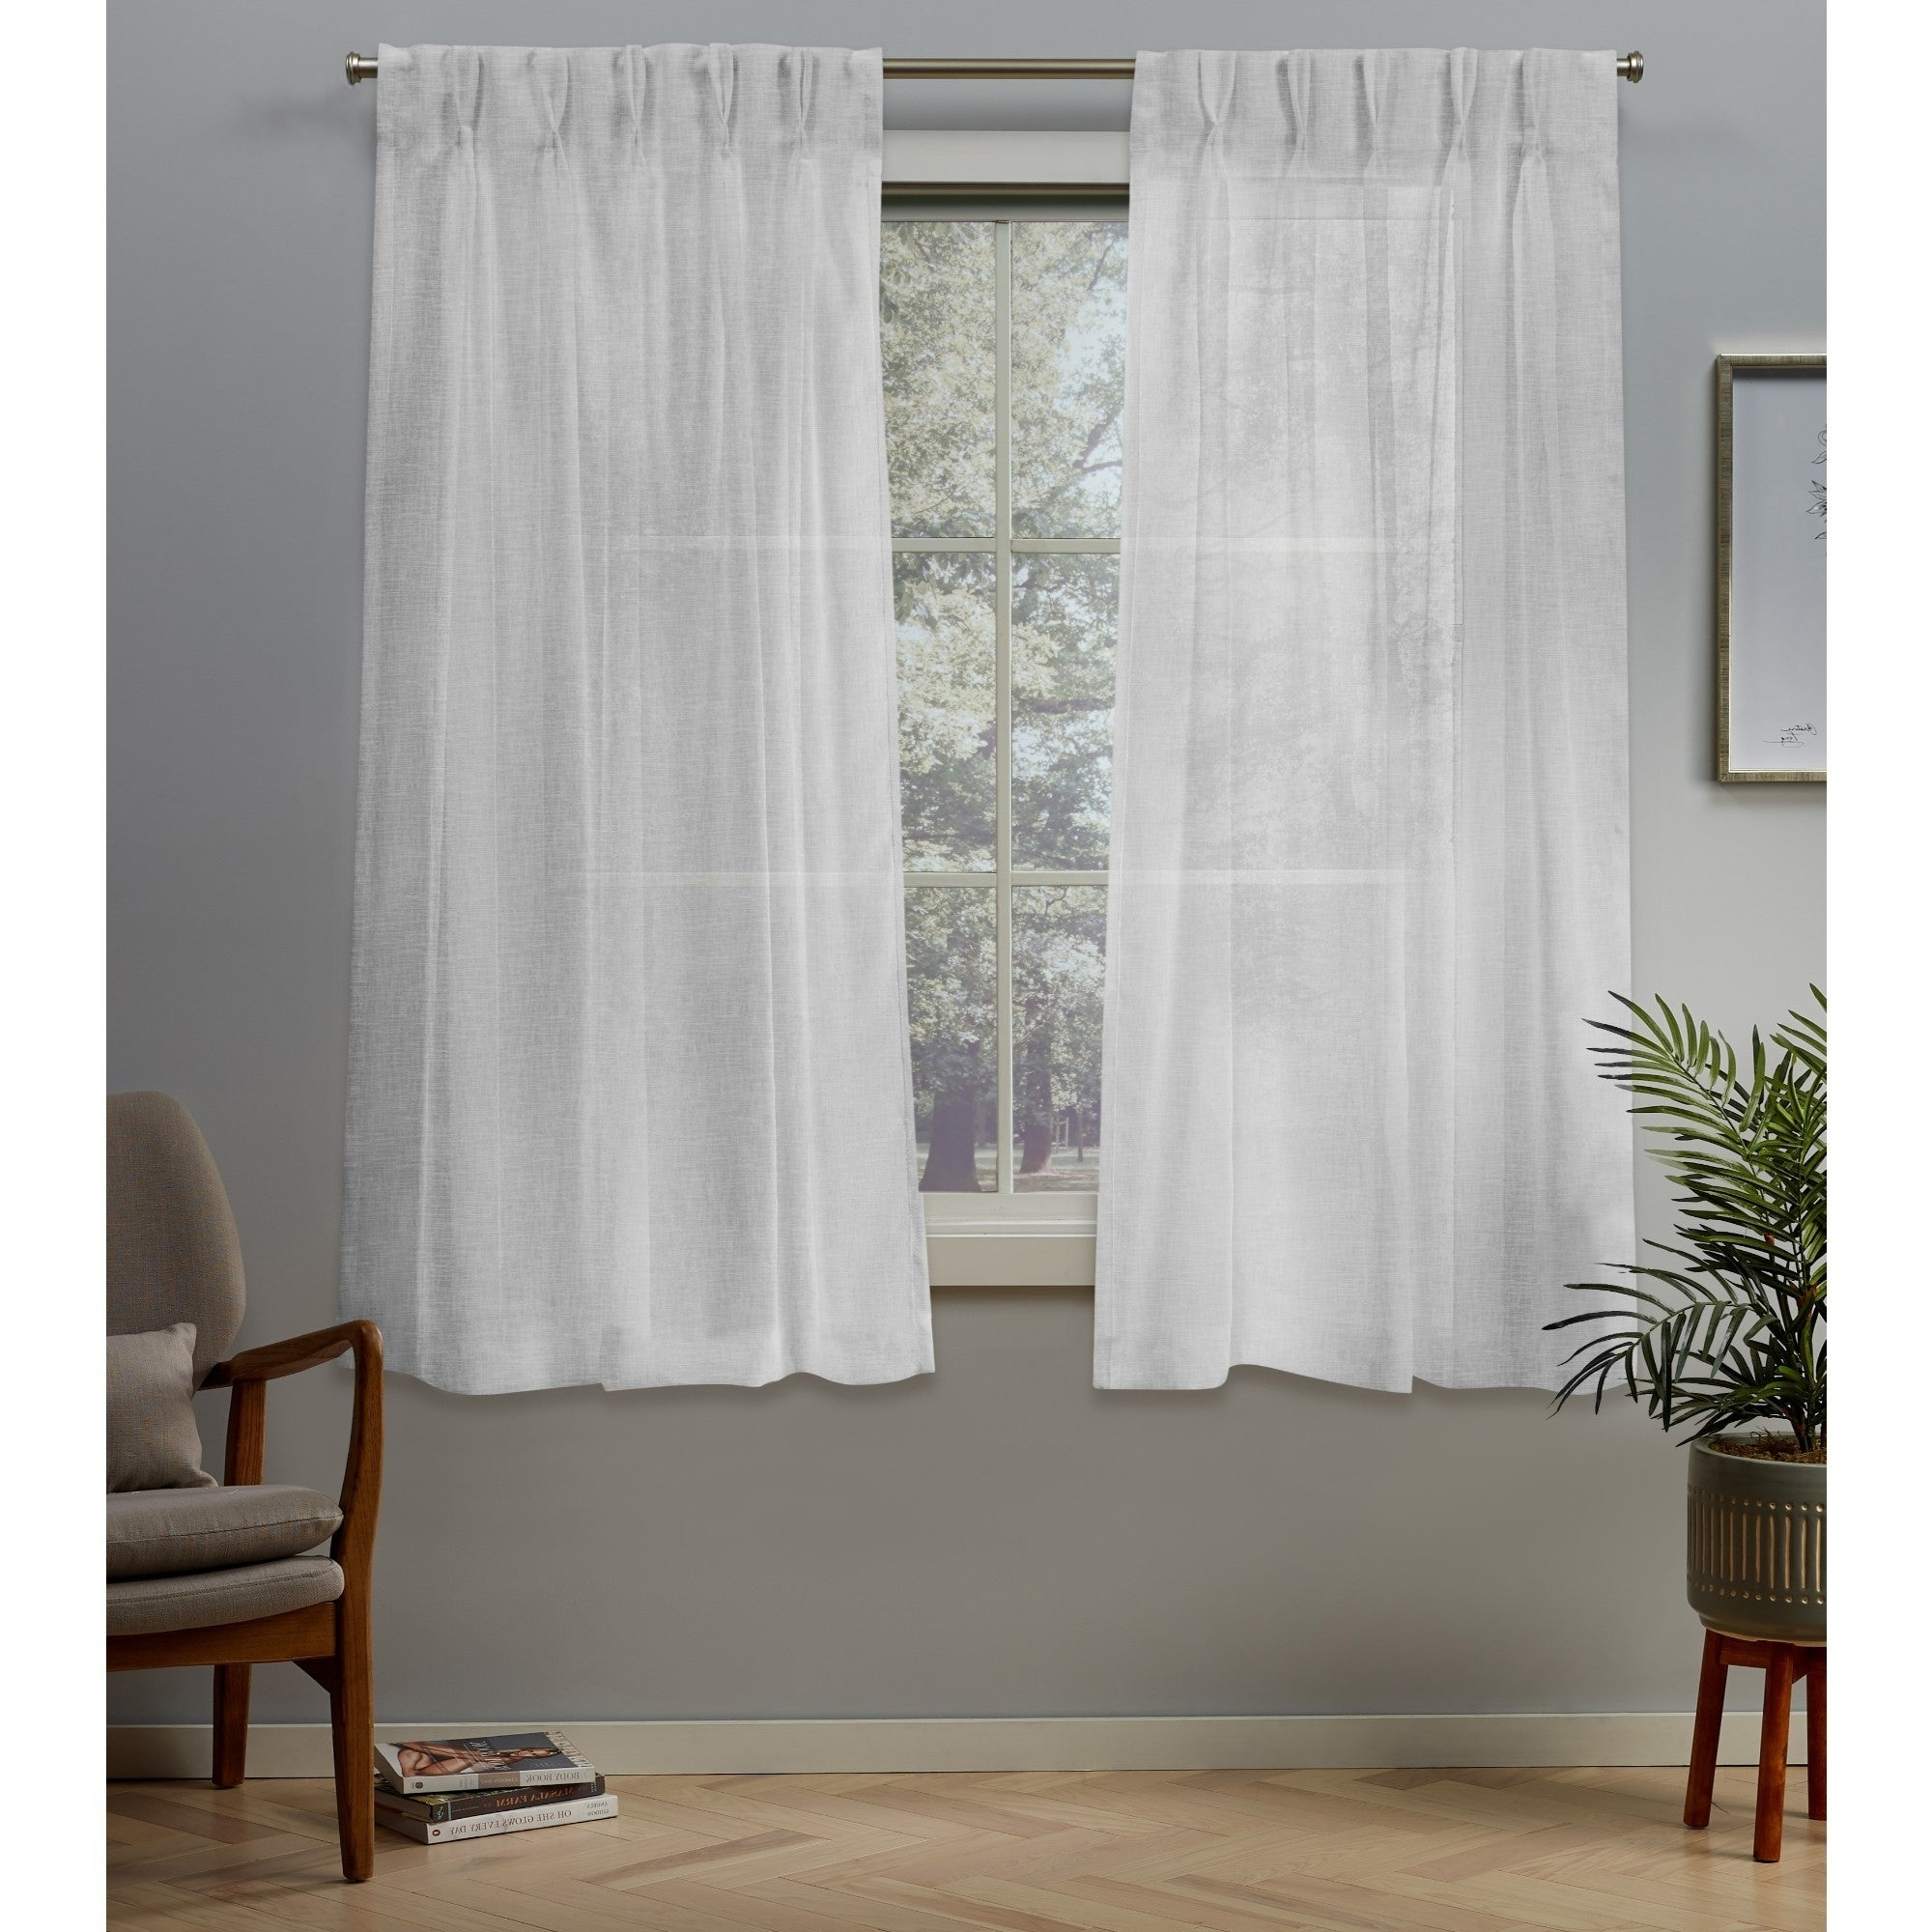 Most Popular Double Pinch Pleat Top Curtain Panel Pairs With Regard To Ati Home Belgian Jacquard Sheer Double Pinch Pleat Top Curtain Panel Pair (Gallery 2 of 20)